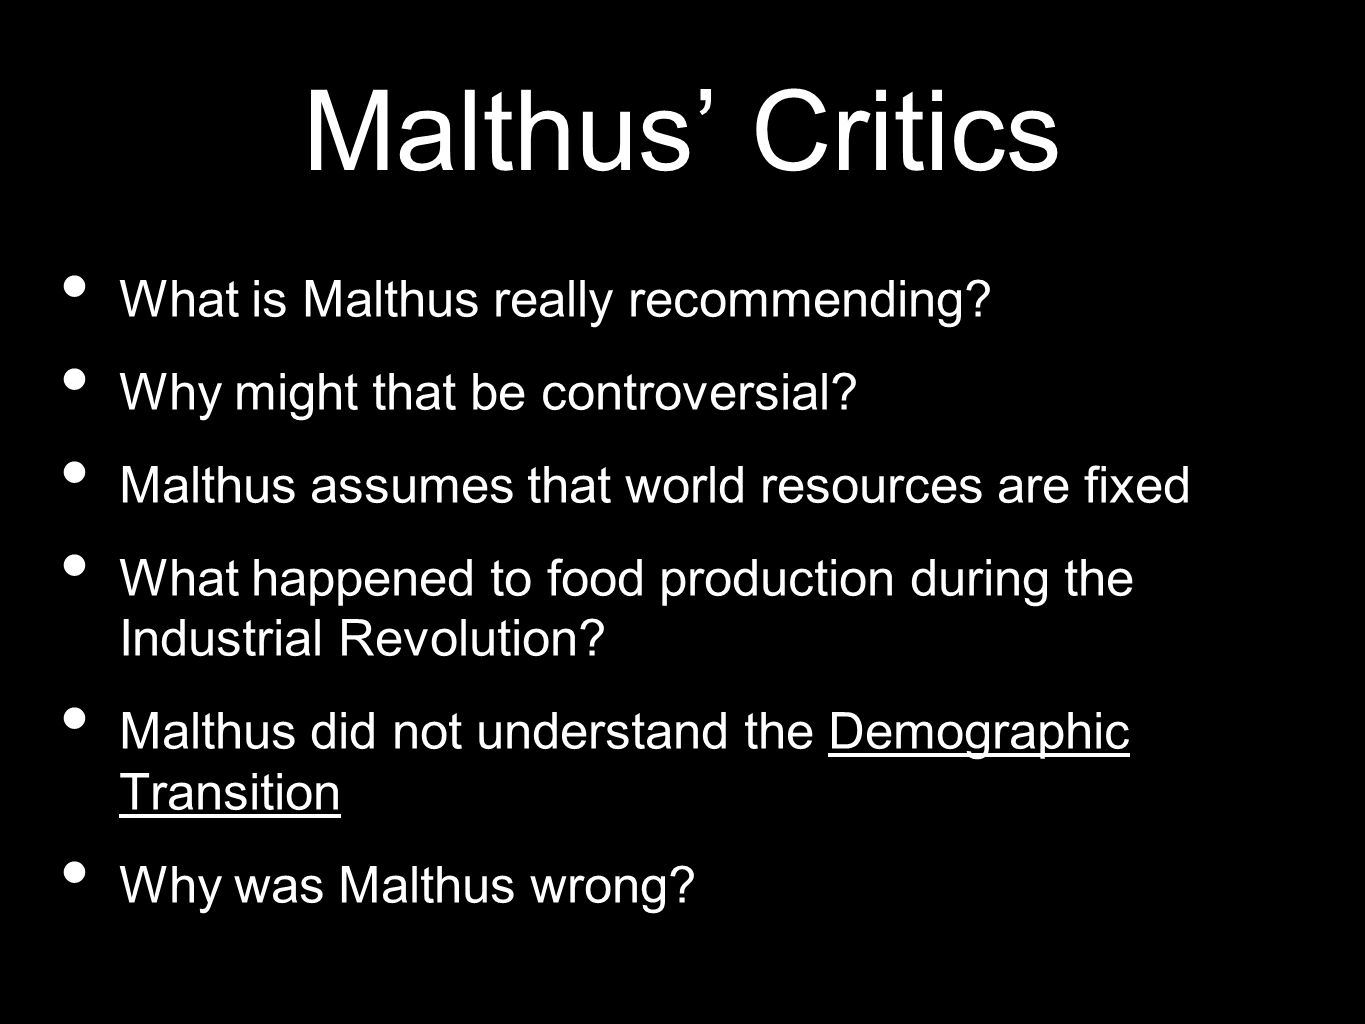 Malthus' Critics What is Malthus really recommending